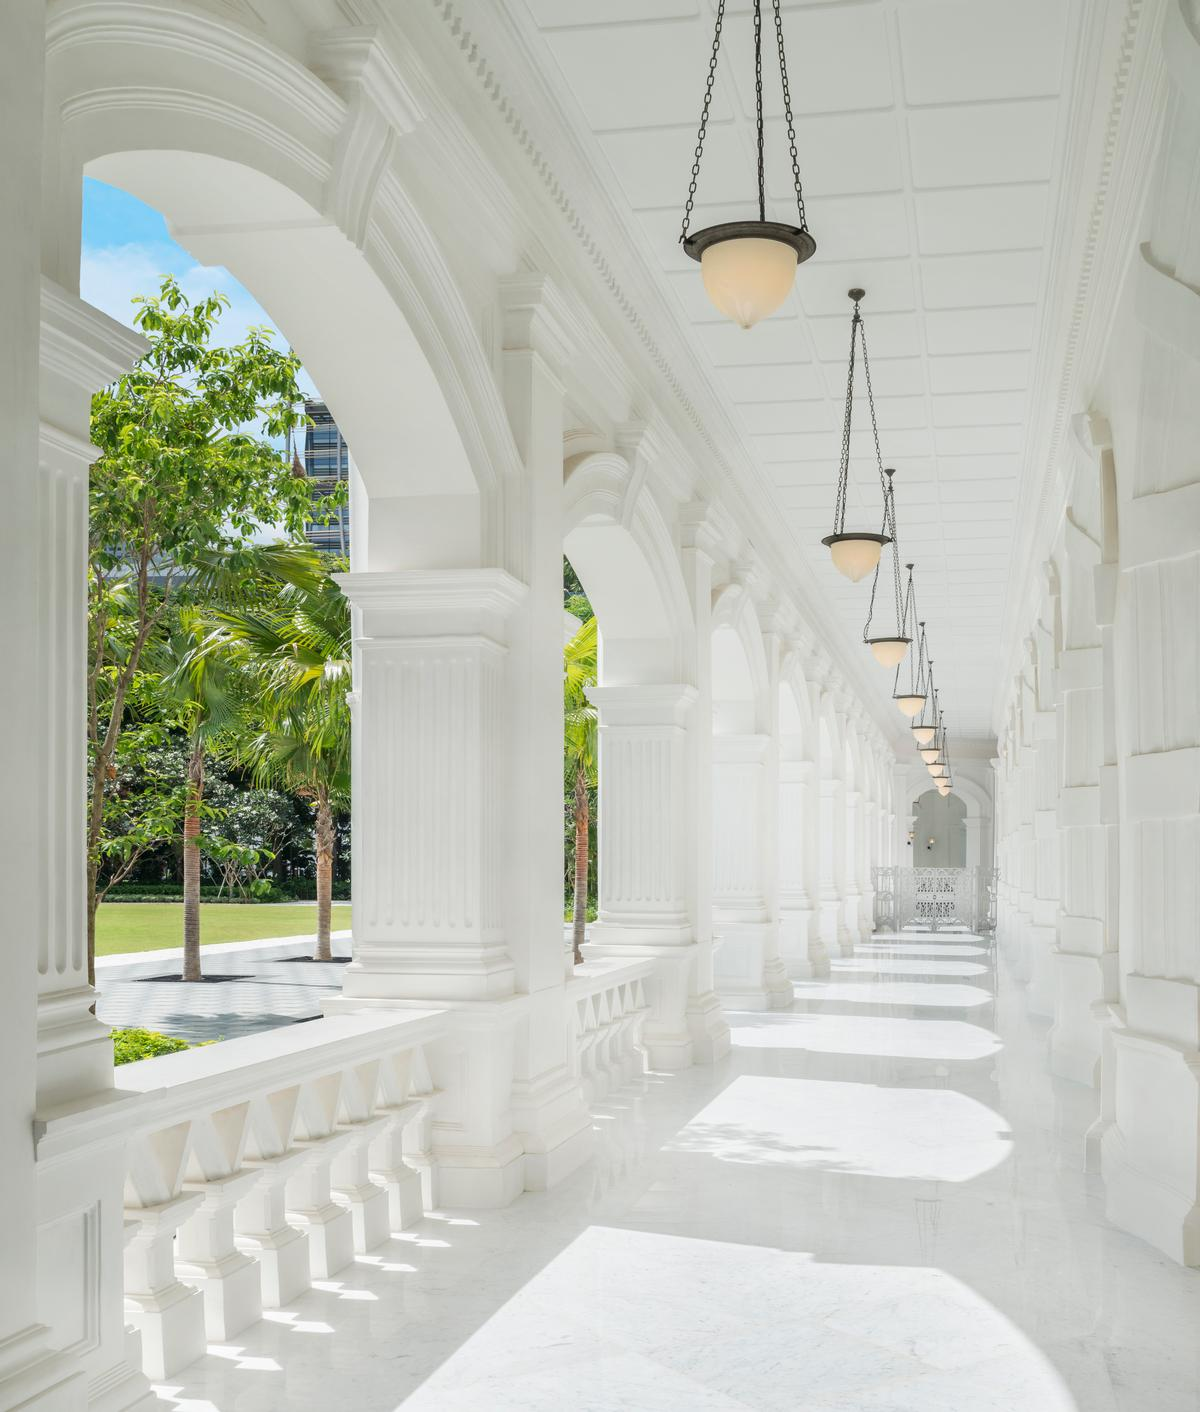 The colonnade walkway at Raffles Singapore / Accor